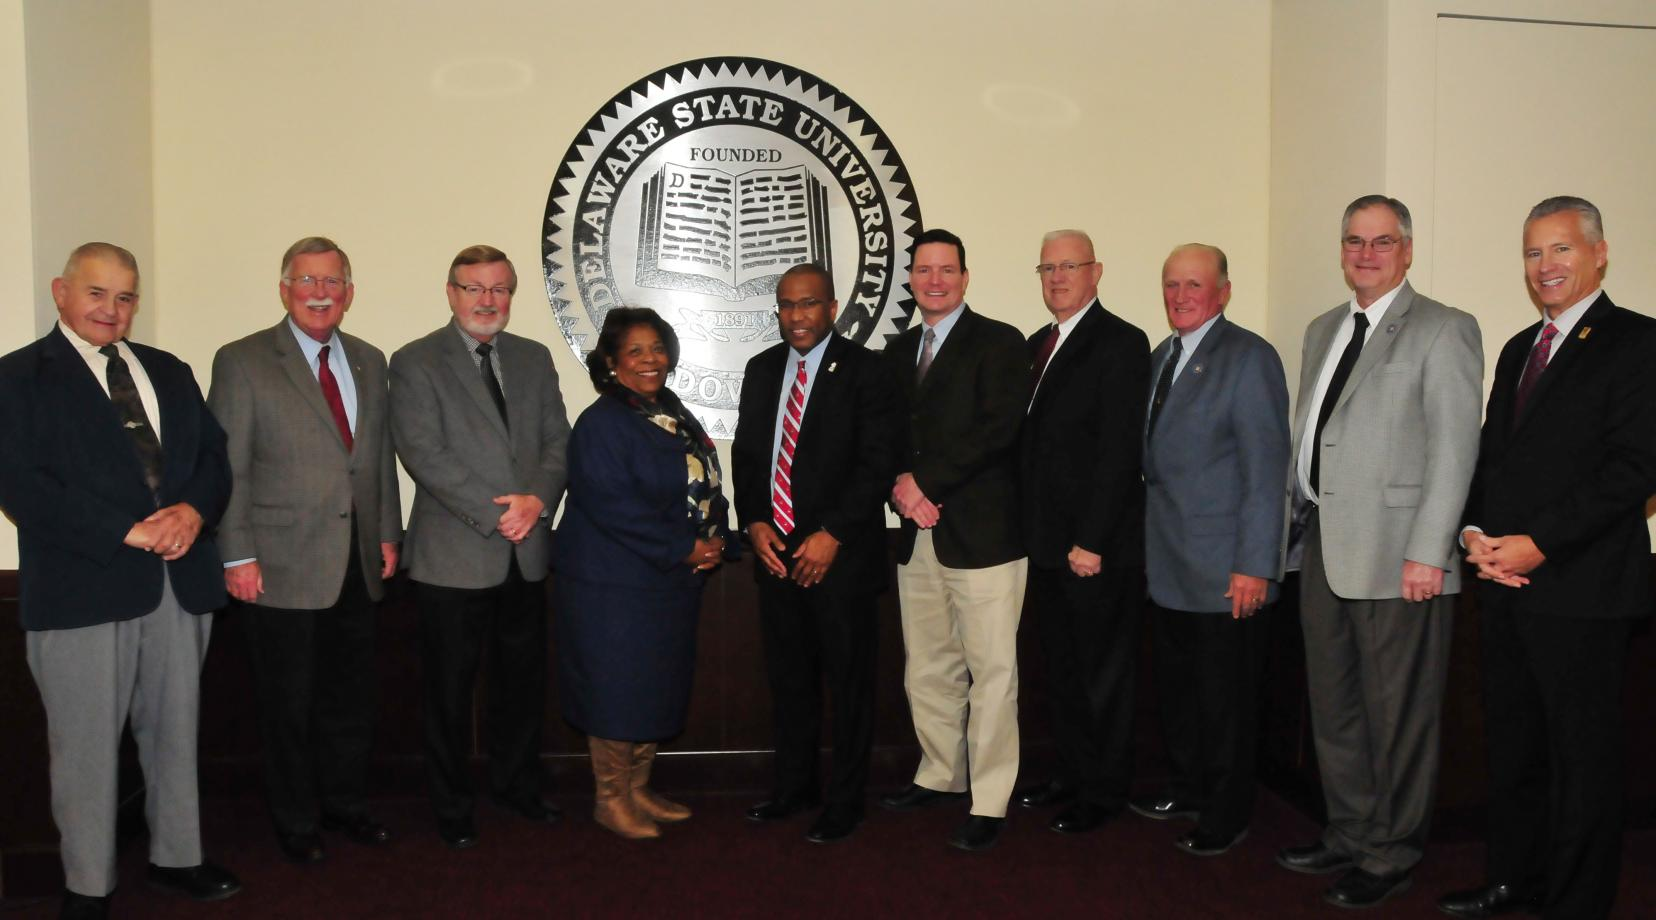 <p>Dr. Harry L. Williams, joined by DSU Board of Trustees Chairwoman Dr. Wilma Mishoe, posed with a group of Kent County state legislators who held their final meeting with the outgoing DSU president on Dec. 12.</p>